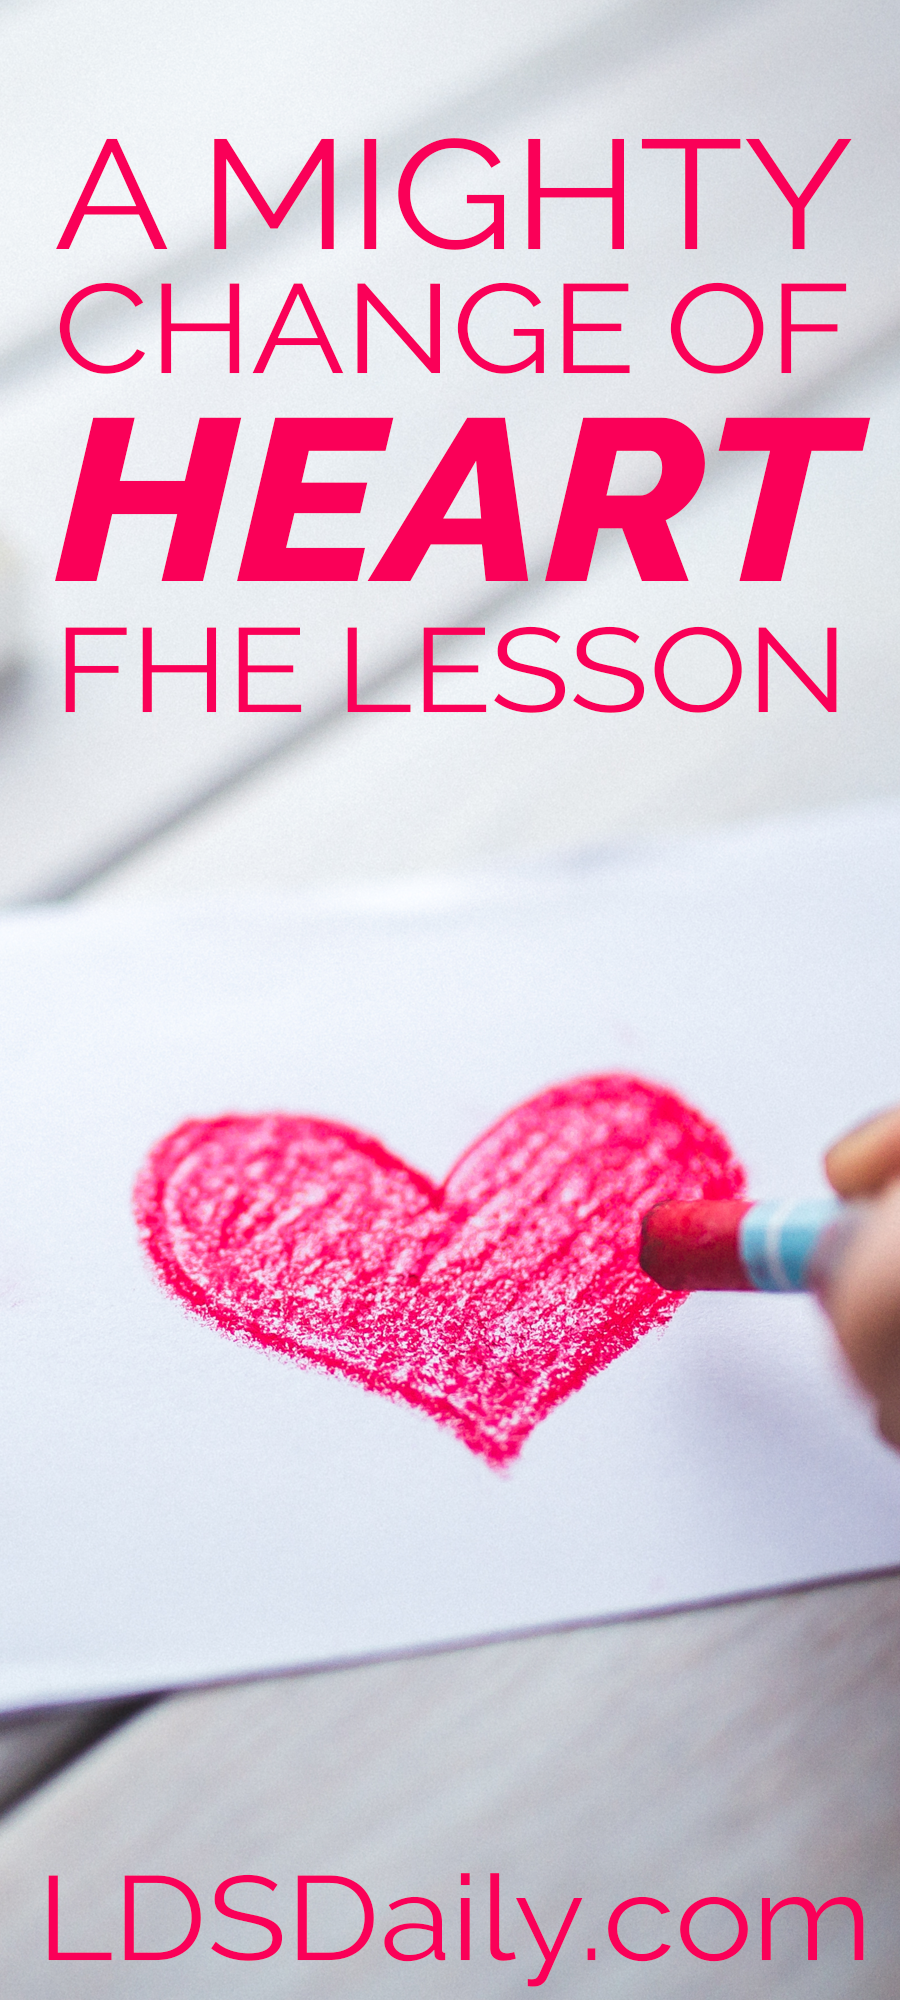 a-mighty-change-of-heart-fhe-lesson